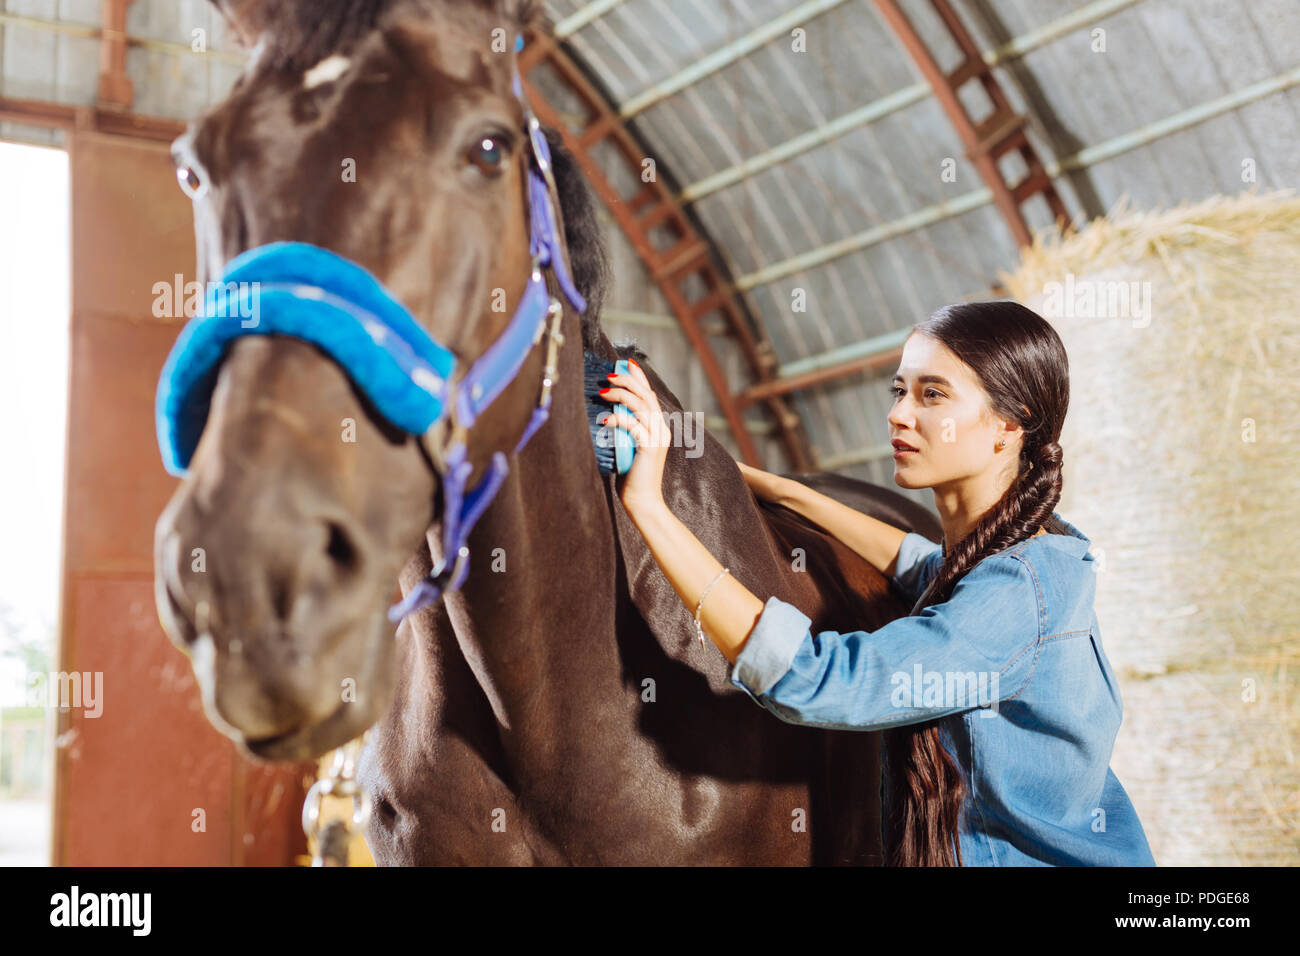 Beaming happy horsewoman cleaning beautiful dark horse - Stock Image